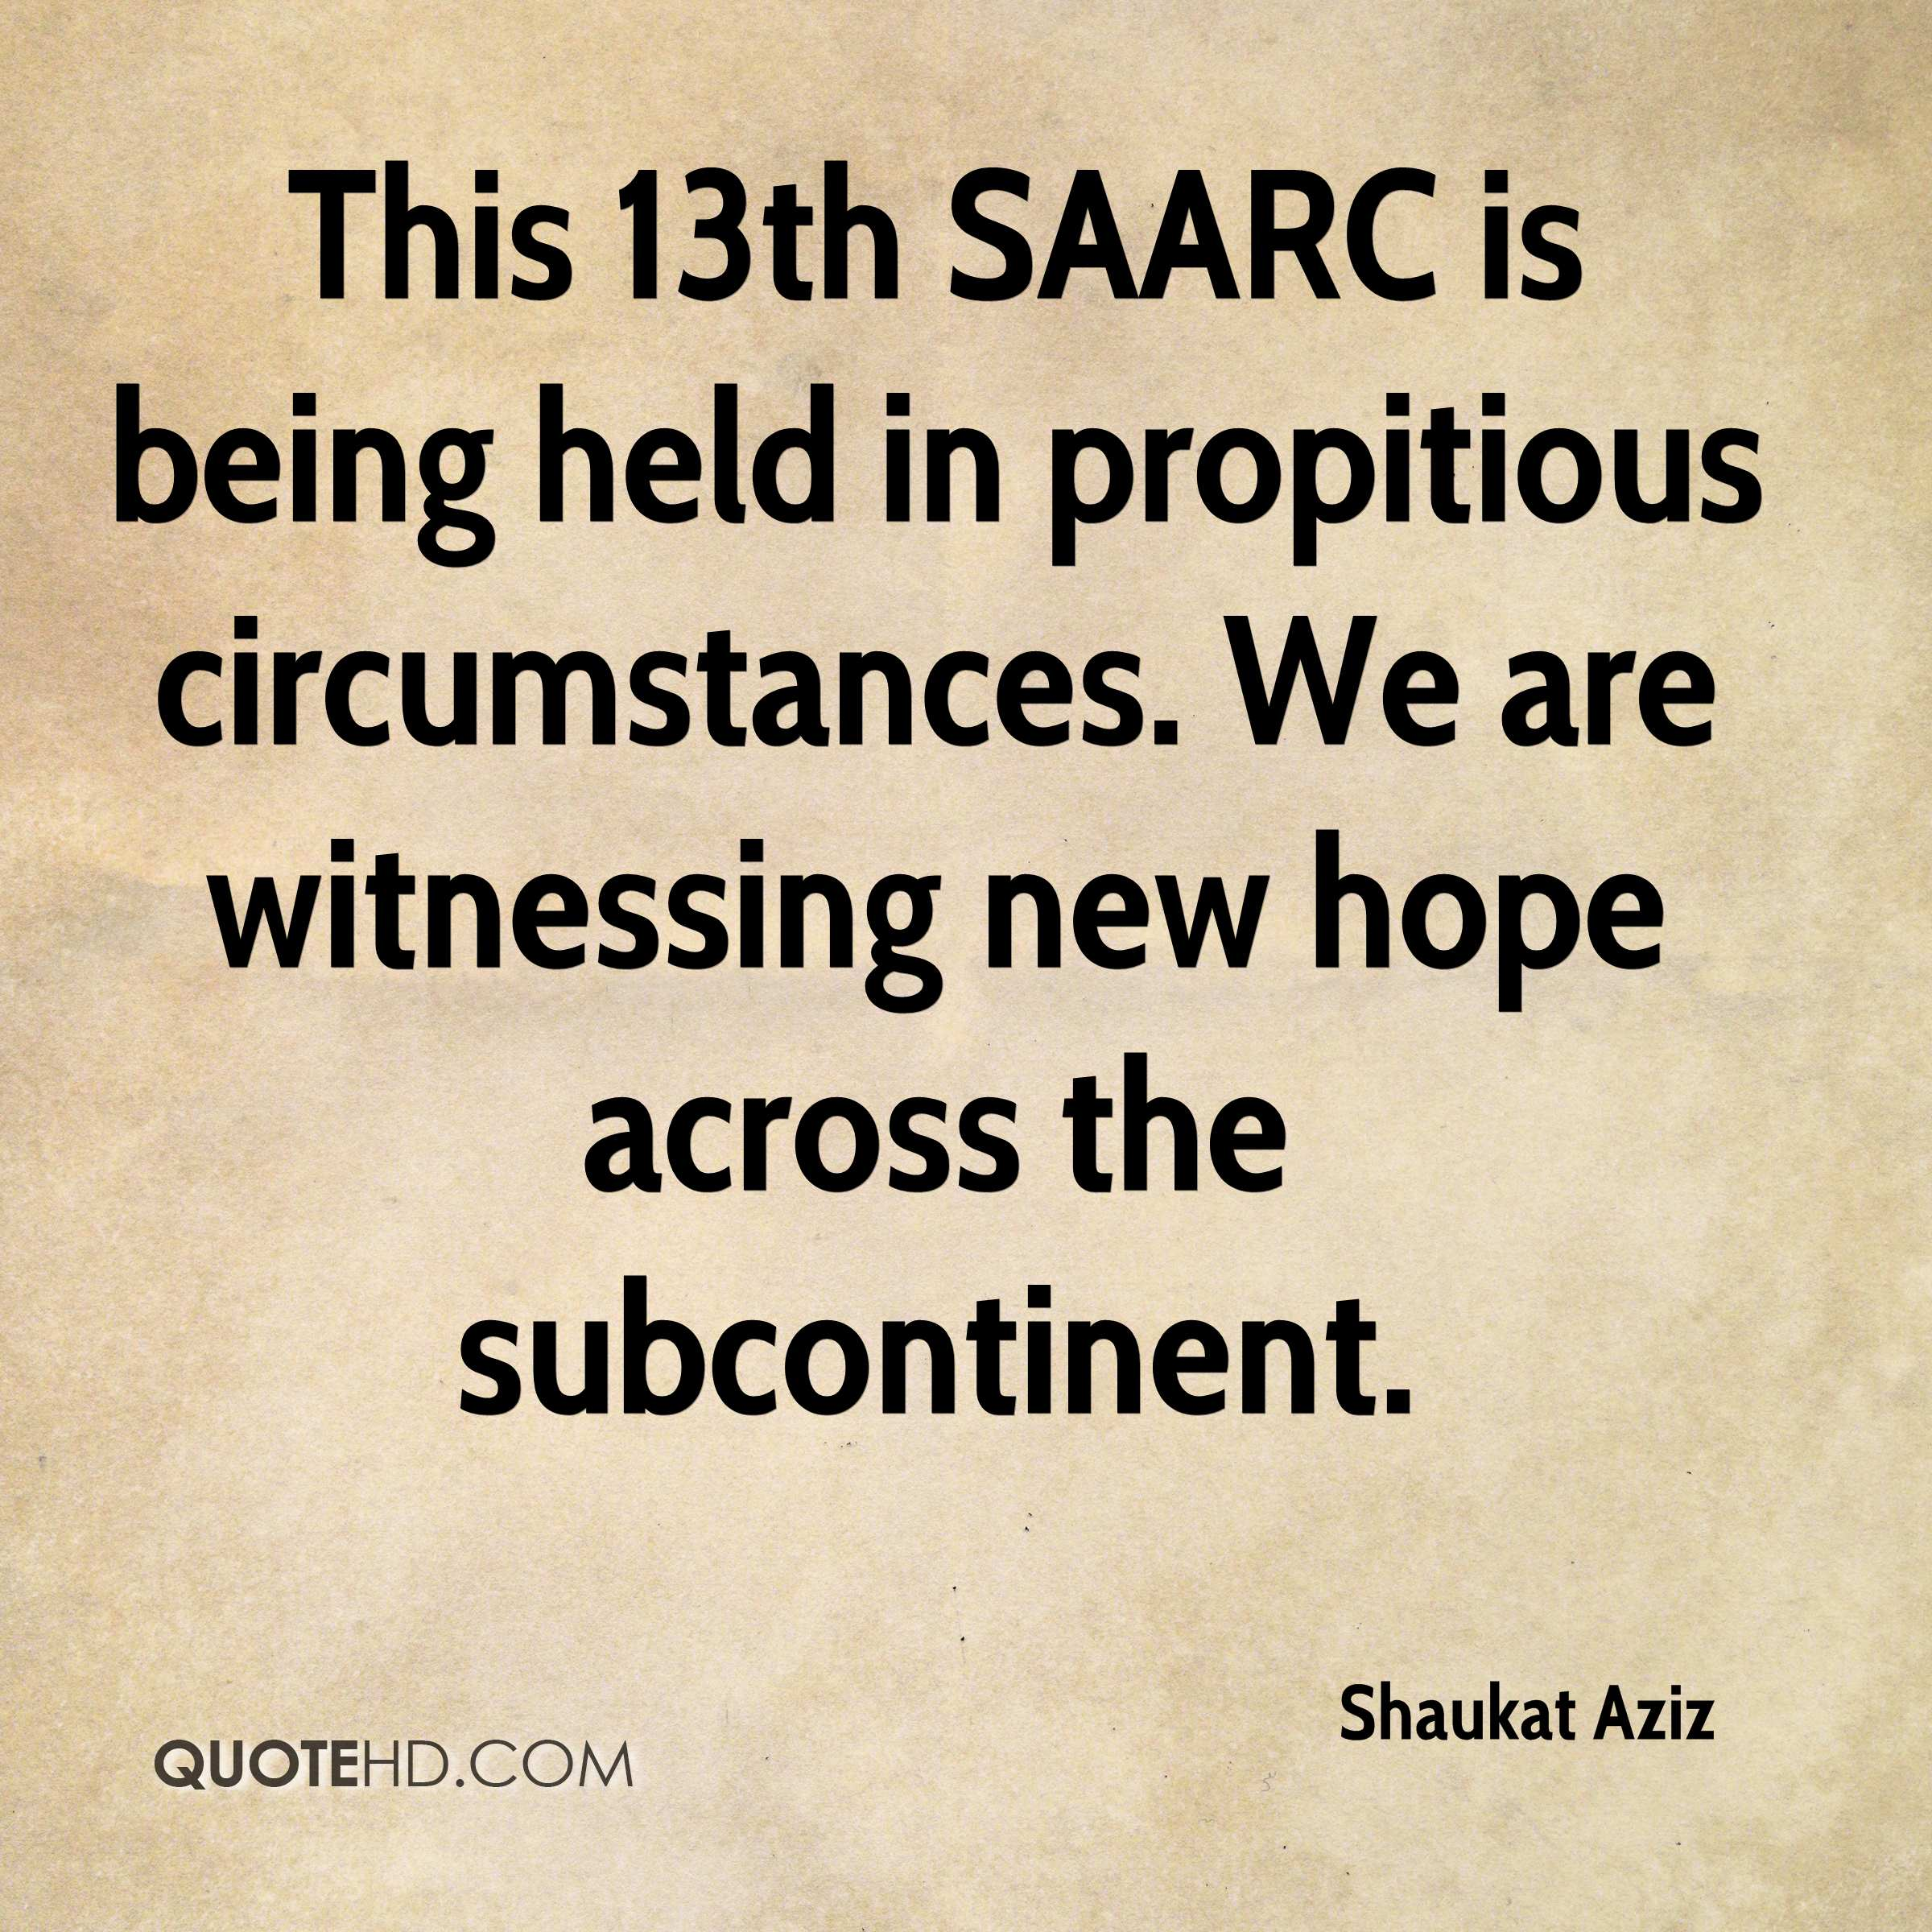 This 13th SAARC is being held in propitious circumstances. We are witnessing new hope across the subcontinent.